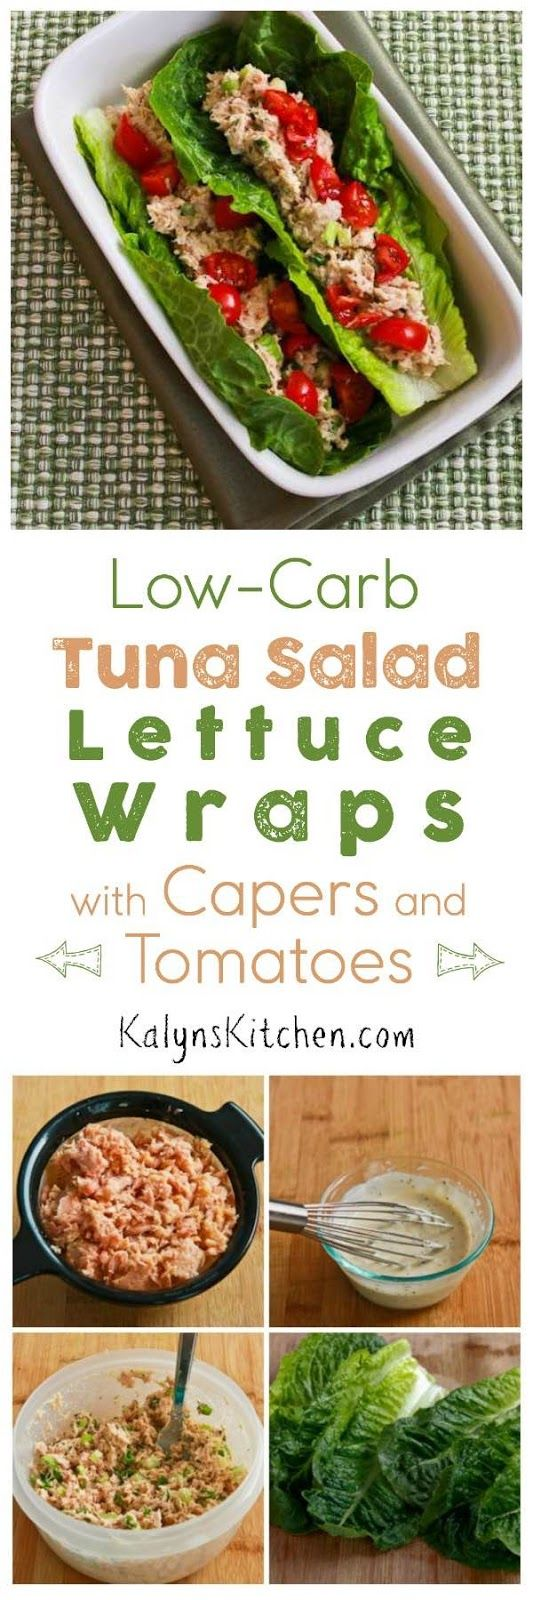 Low-Carb Tuna Salad Lettuce Wraps with Capers and Tomatoes are a perfect low-carb lunch idea; you can even take these to work as a no-heat lunch! [found on KalynsKitchen.com]